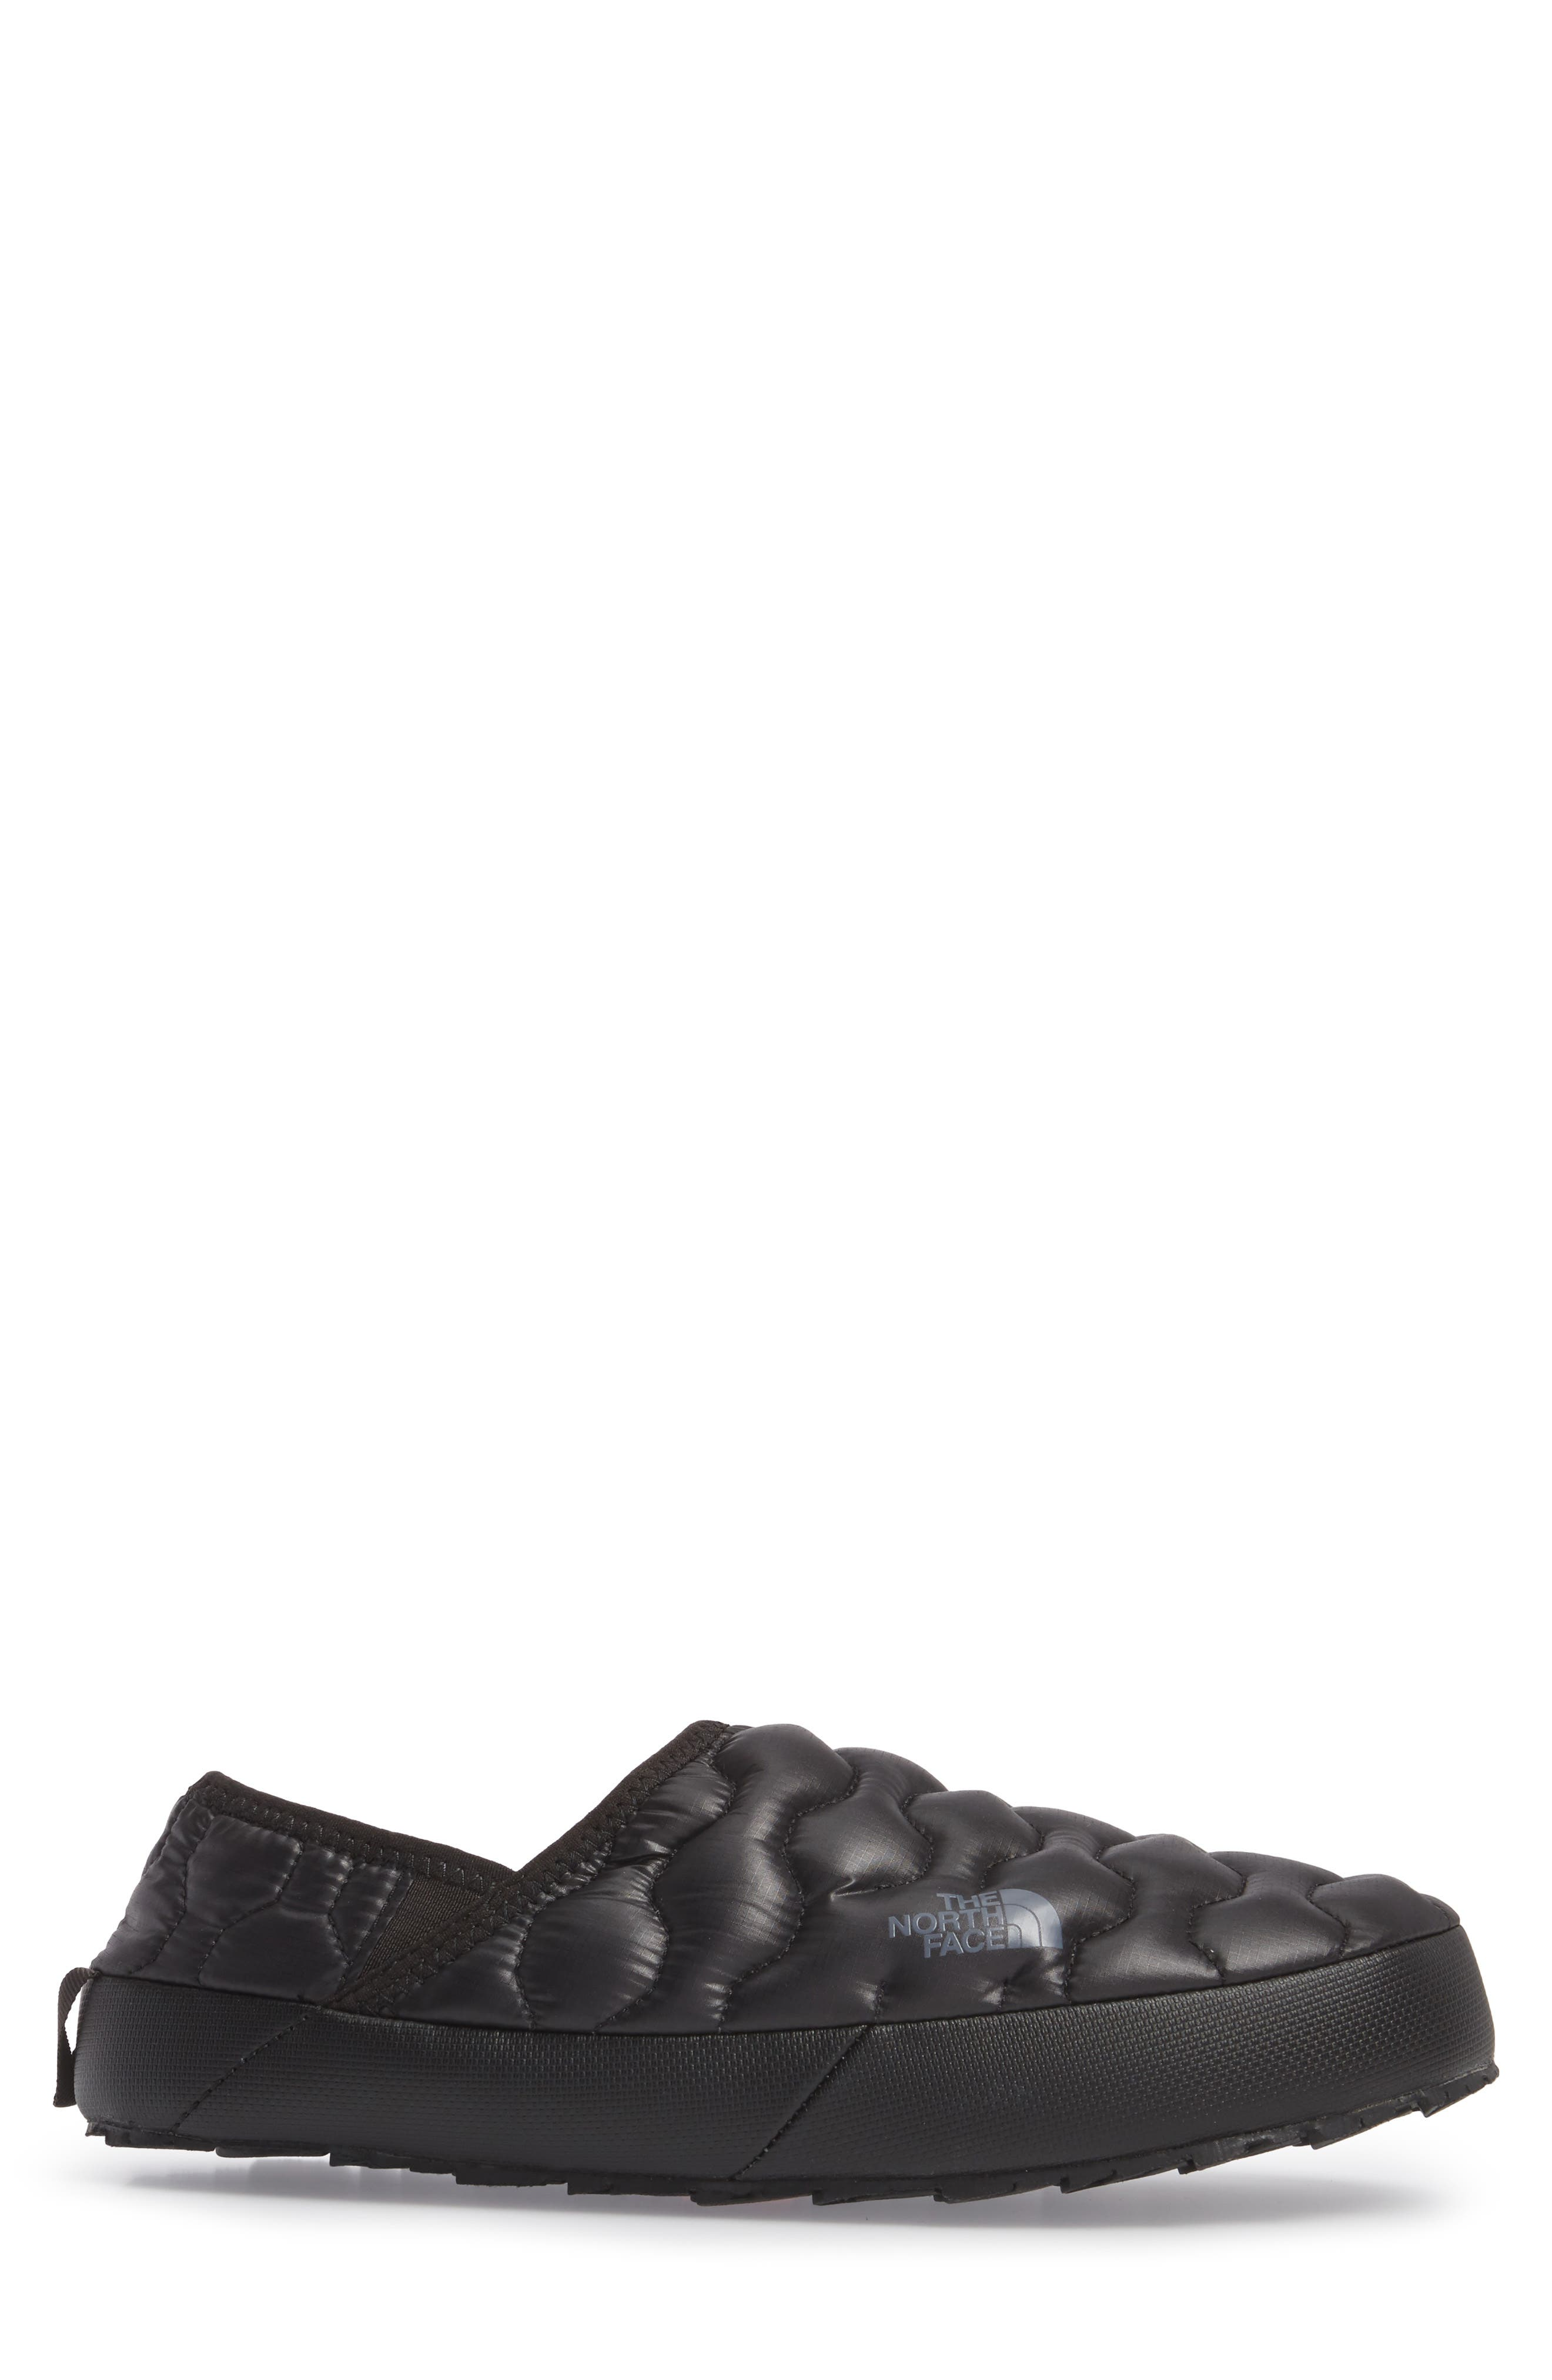 ThermoBall<sup>™</sup> Water-Resistant Traction slipper,                             Alternate thumbnail 3, color,                             SHINY BLACK/ DARK GREY